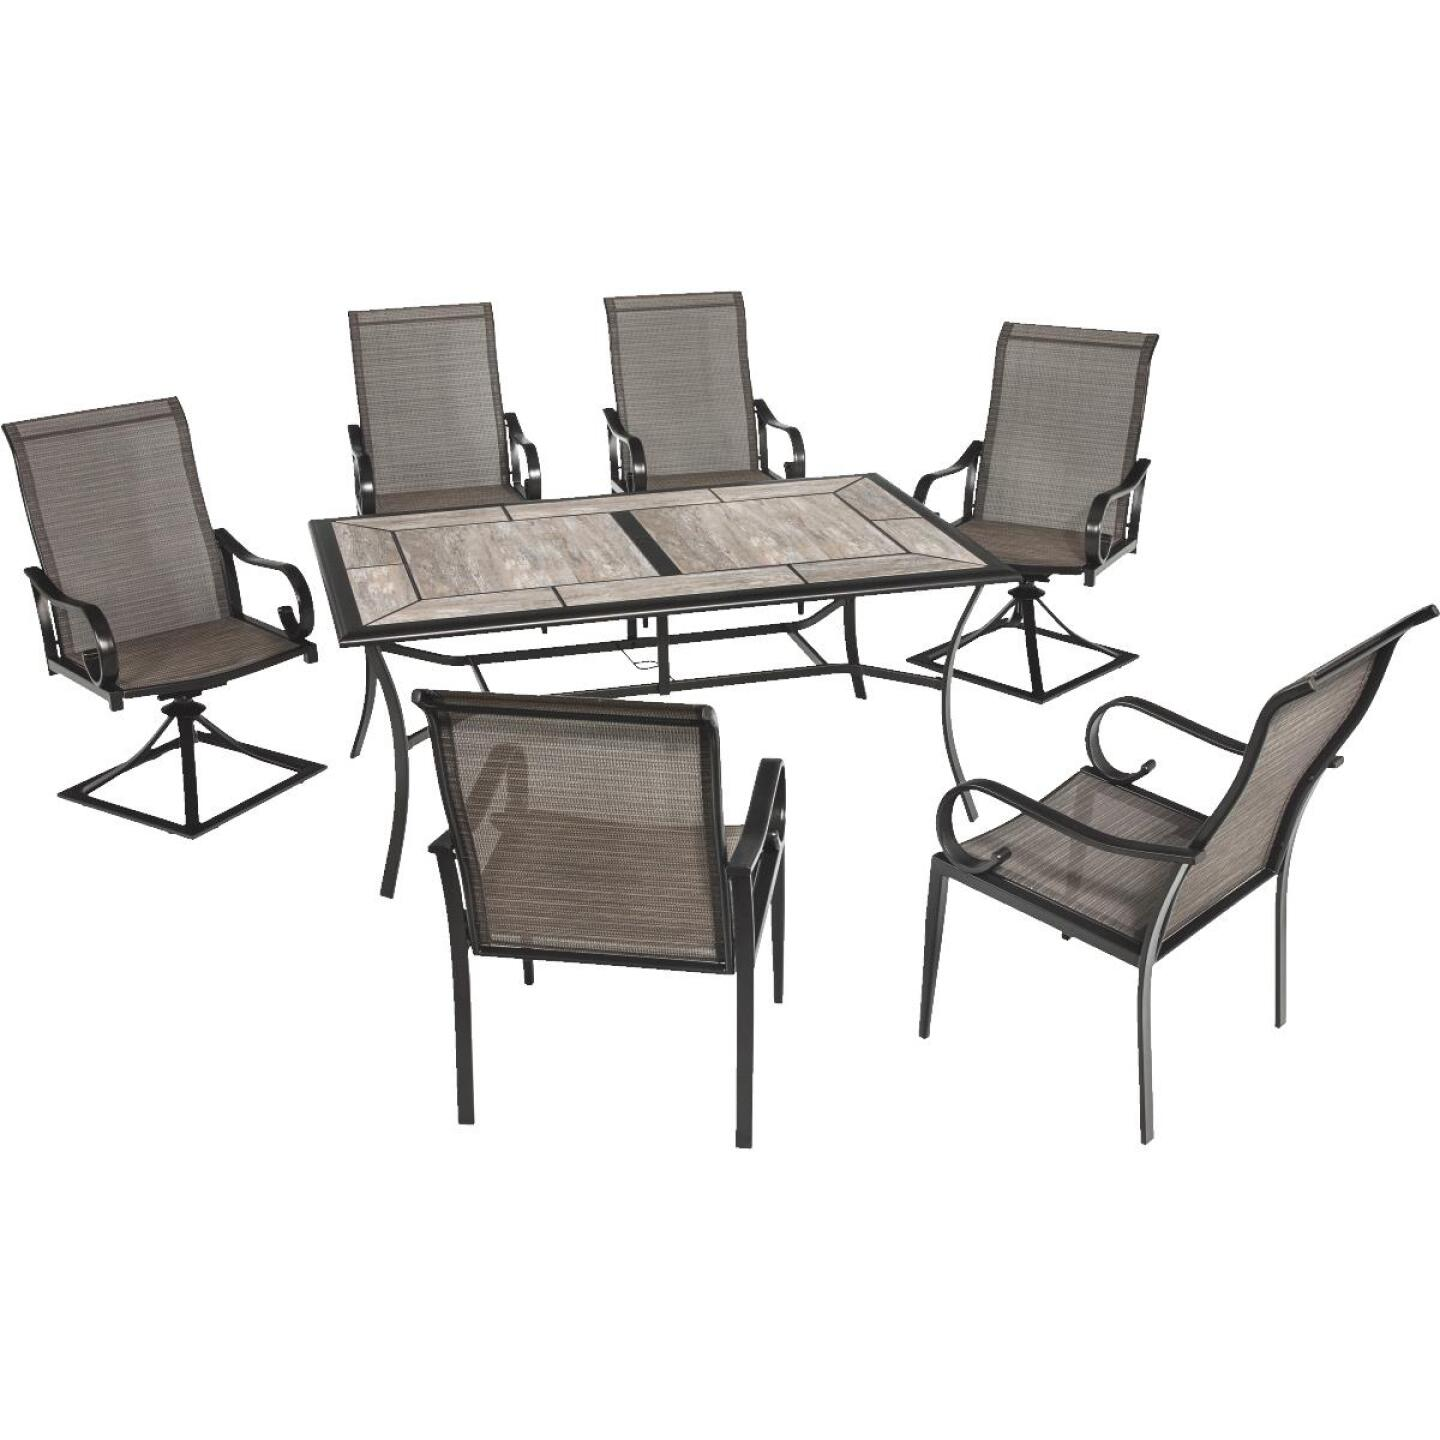 Outdoor Expressions Berkshire 7-Piece Dining Set Image 292